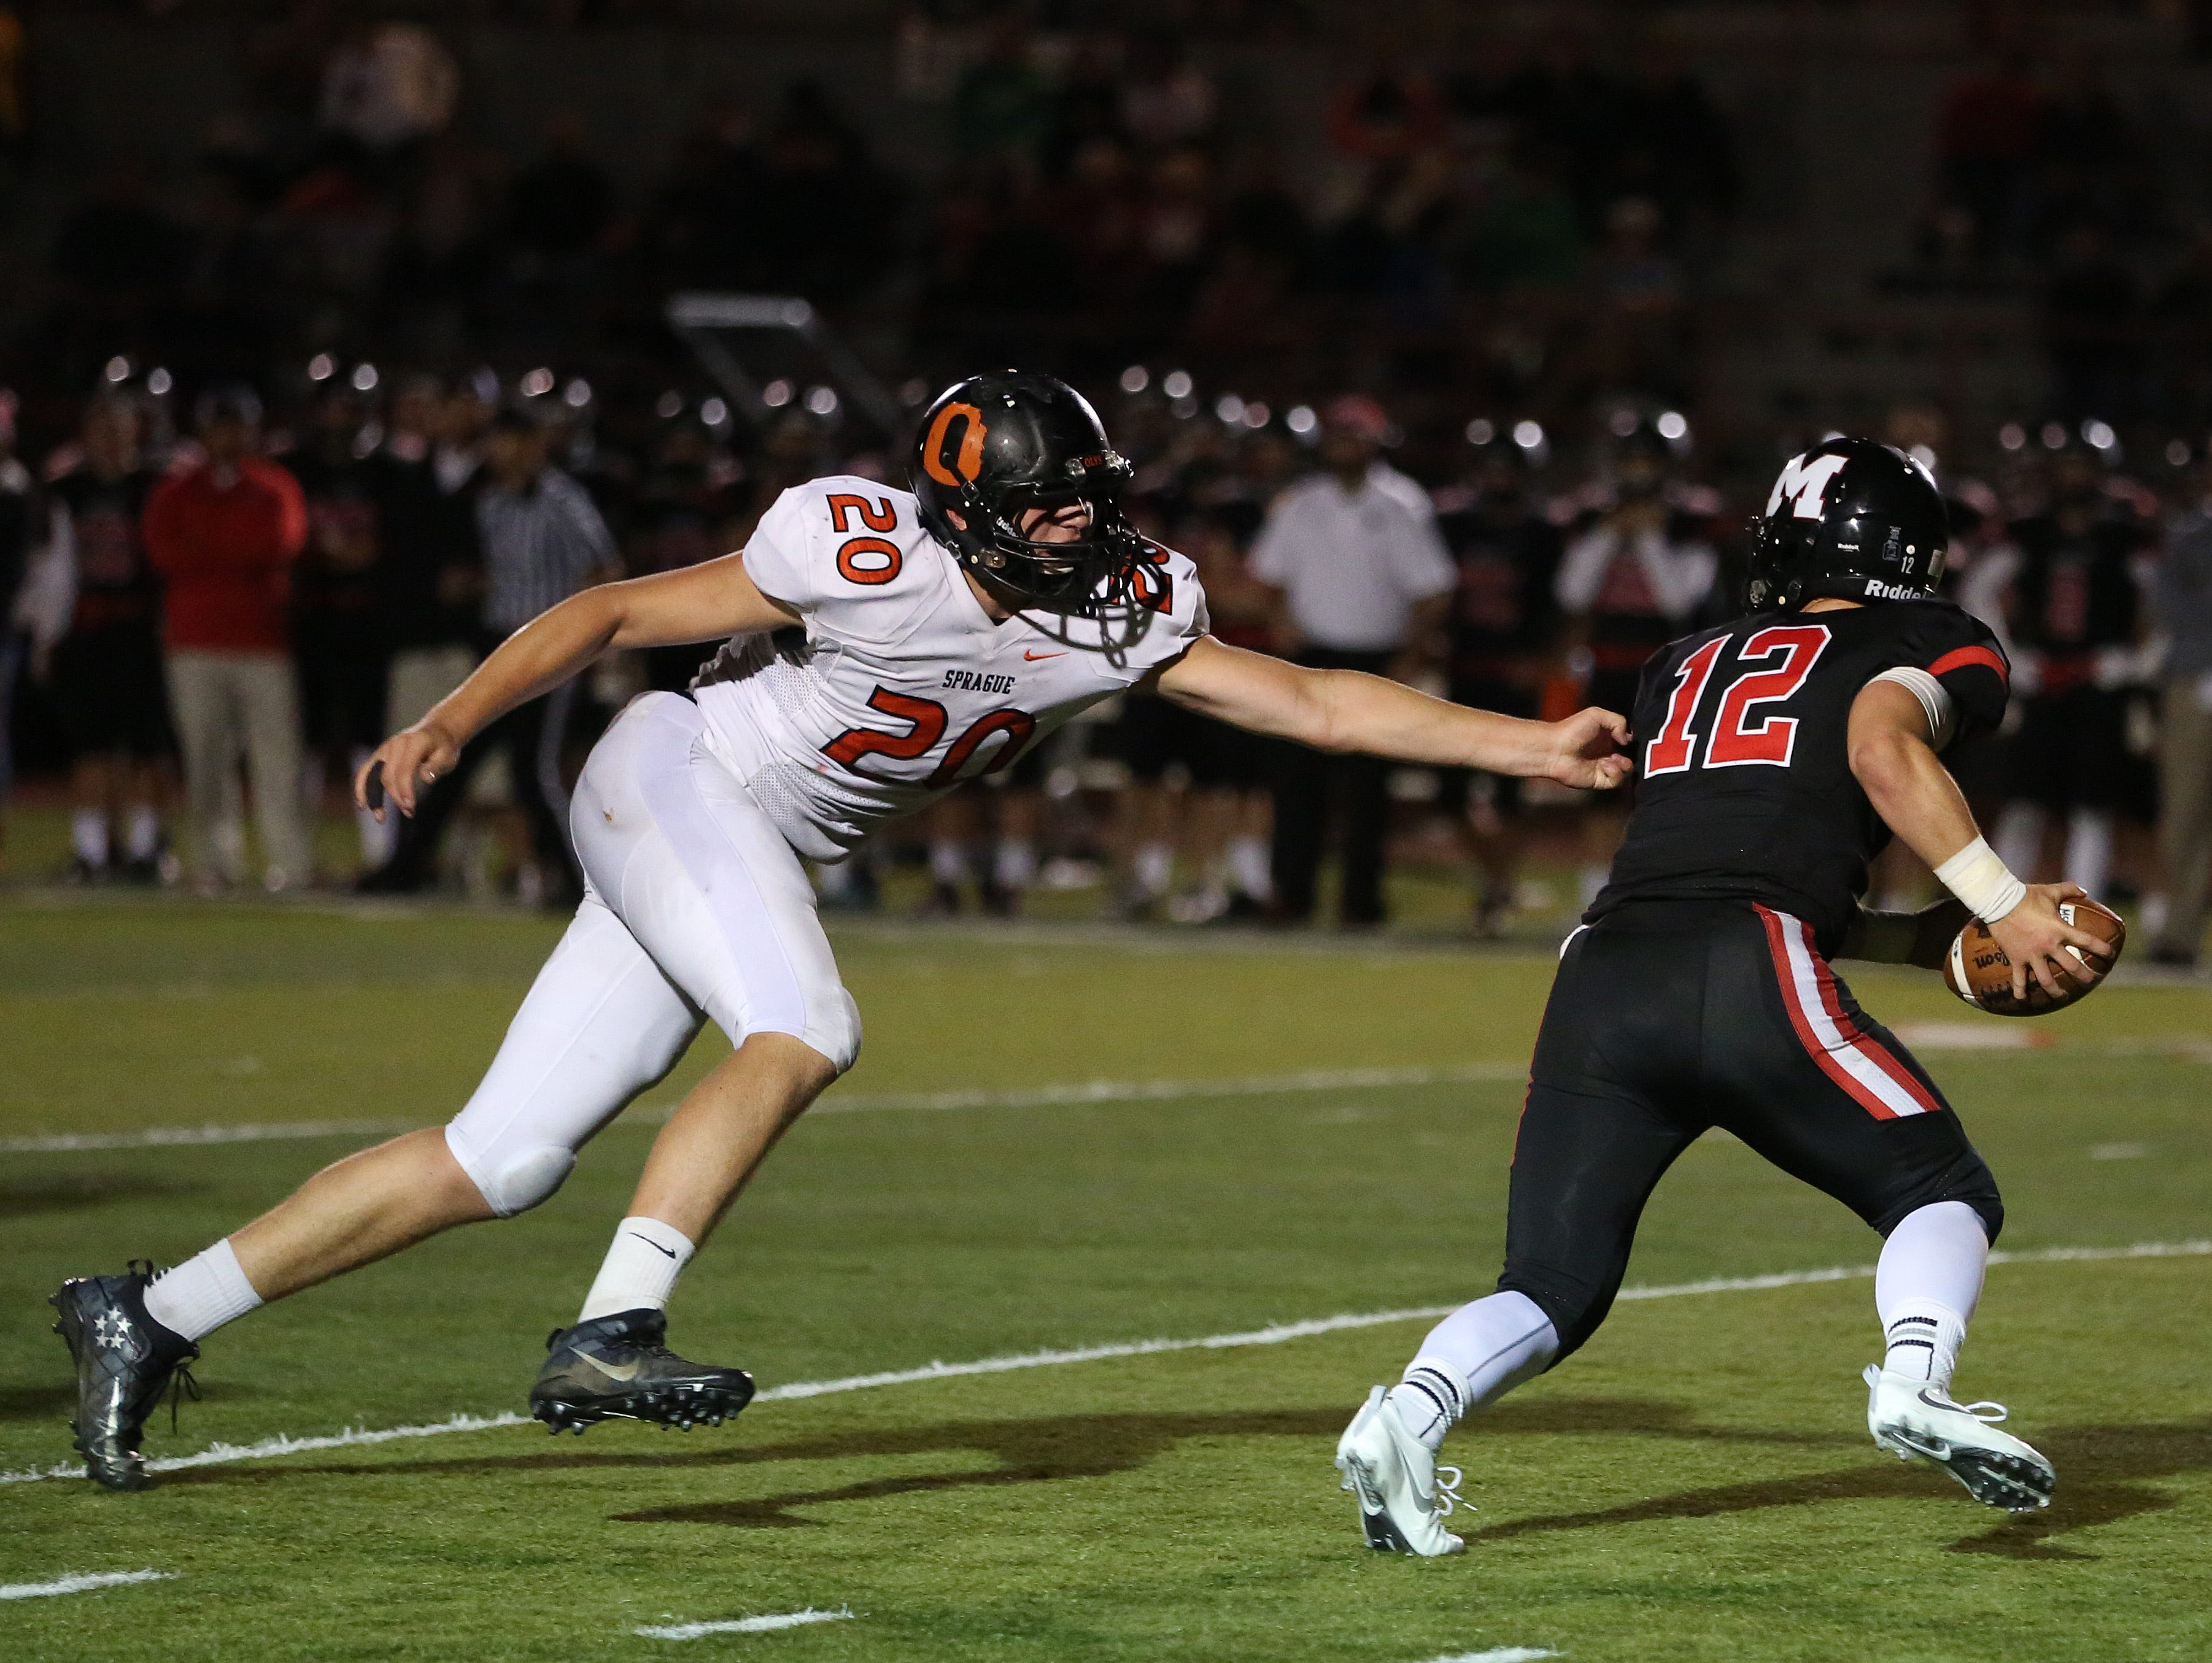 Sprague's Teagan Quitoriano goes after McMinnville's Wyatt Smith as the Olys defeat the Grizzlies 49-27 in Greater Valley Conference game on Friday, Sept. 23, 2016, in McMinnville.